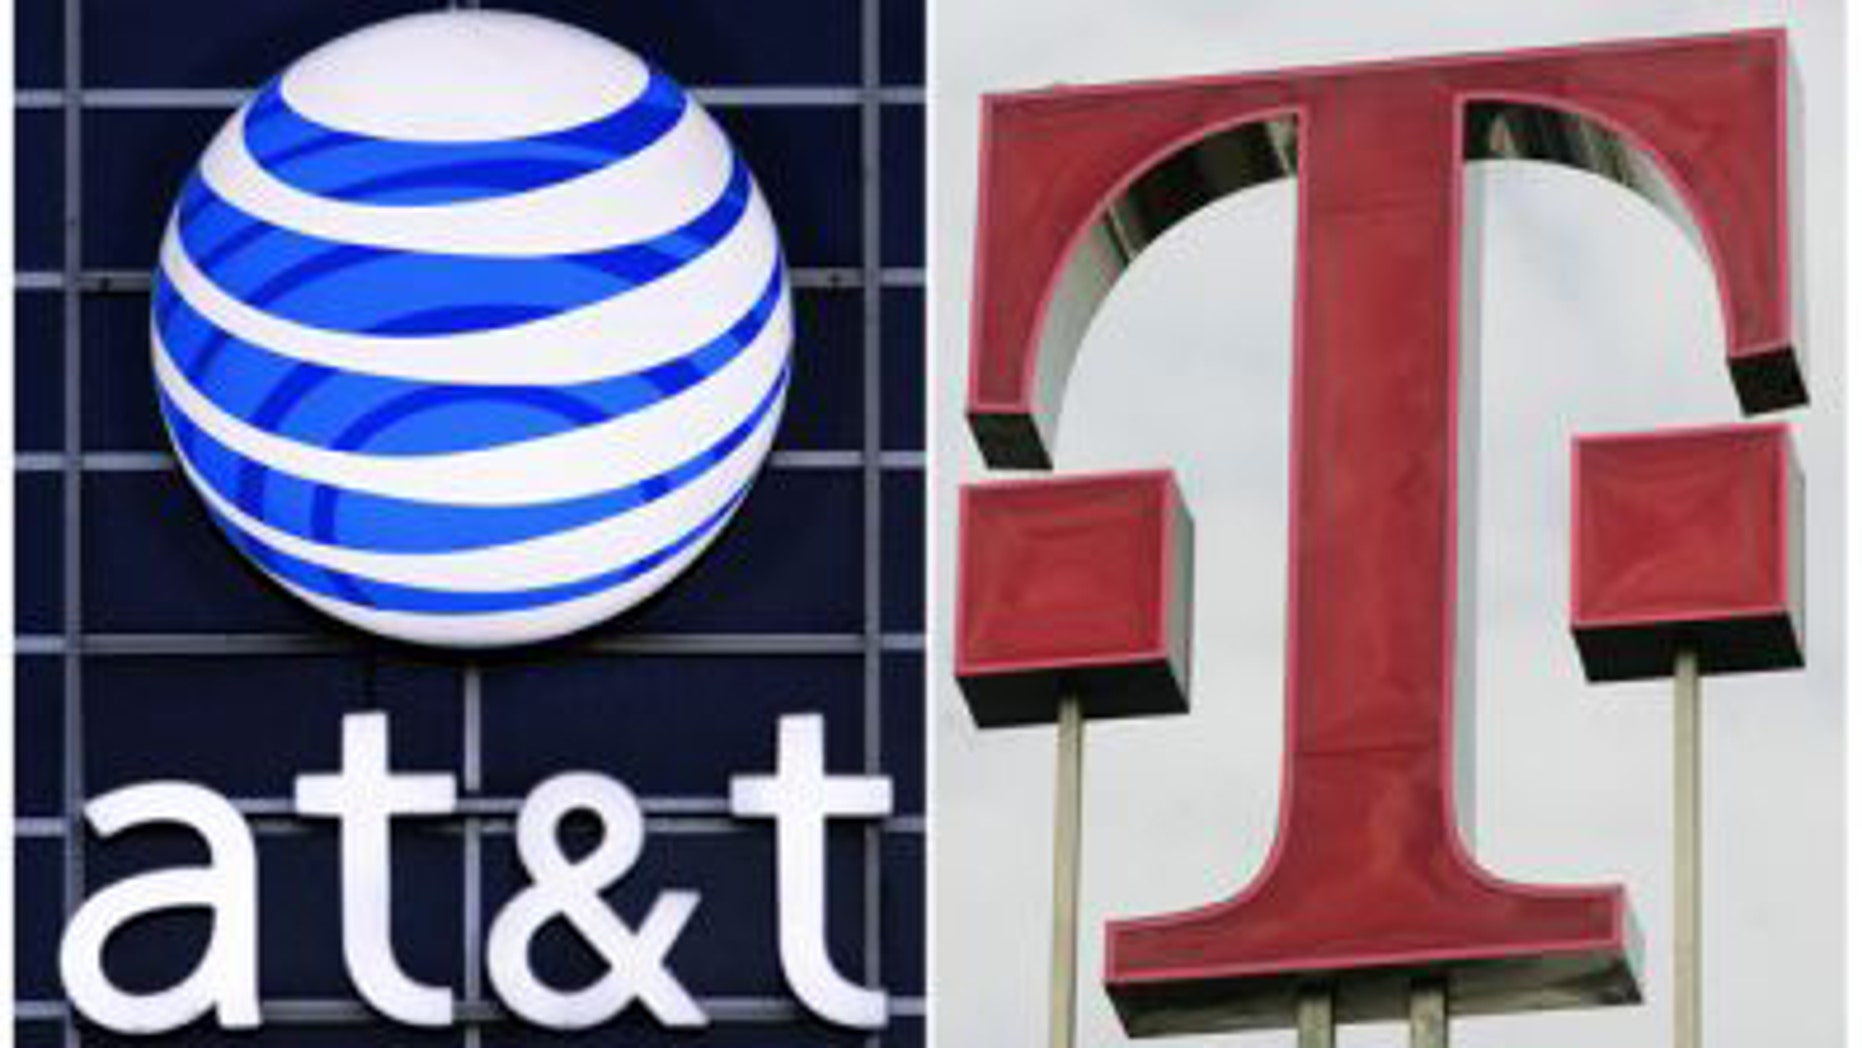 Dec. 19, 2011: AT&T said that it is ending its $39 billion bid to buy T-Mobile USA after facing fierce government objections. AT&T's purchase of T-Mobile from Deutsche Telekom of Germany would have made it the largest cellphone company in the U.S.